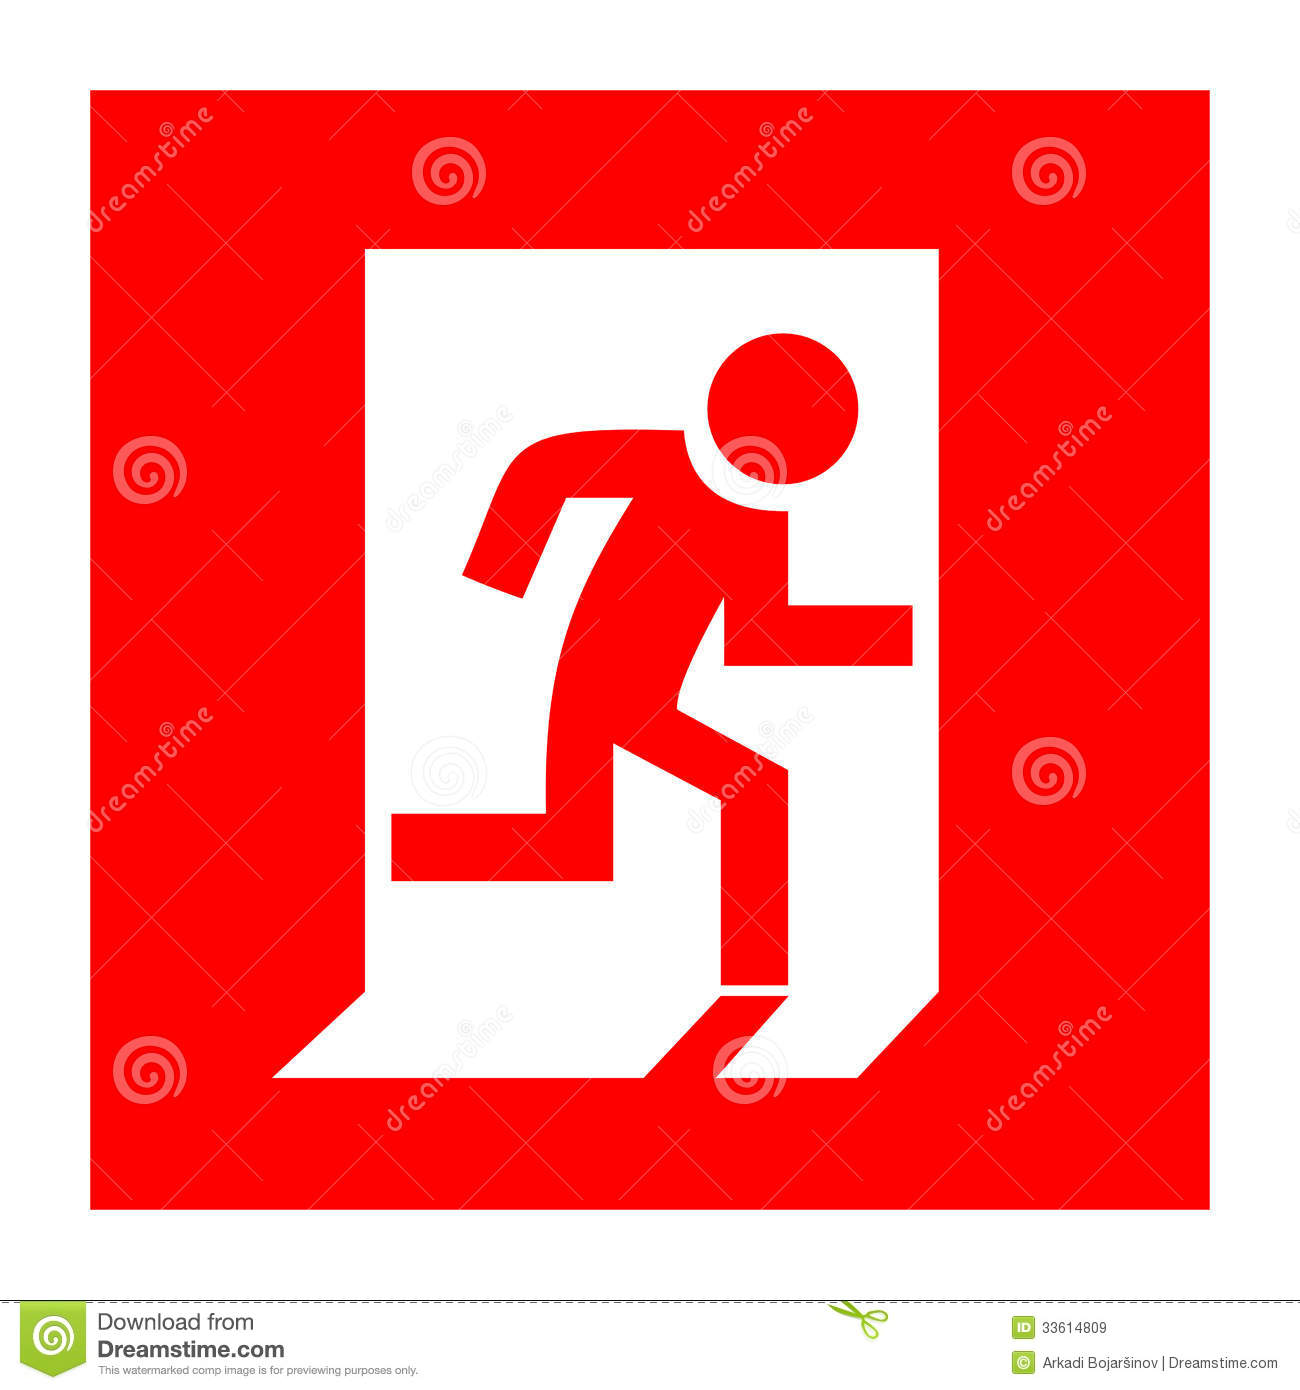 Reflected Ceiling Plan Rcp besides Product likewise Fire Extinguisher Safety Training also Fire Hydrant Plan Symbol also Fire Alarm Regulations. on fire safety plan symbols